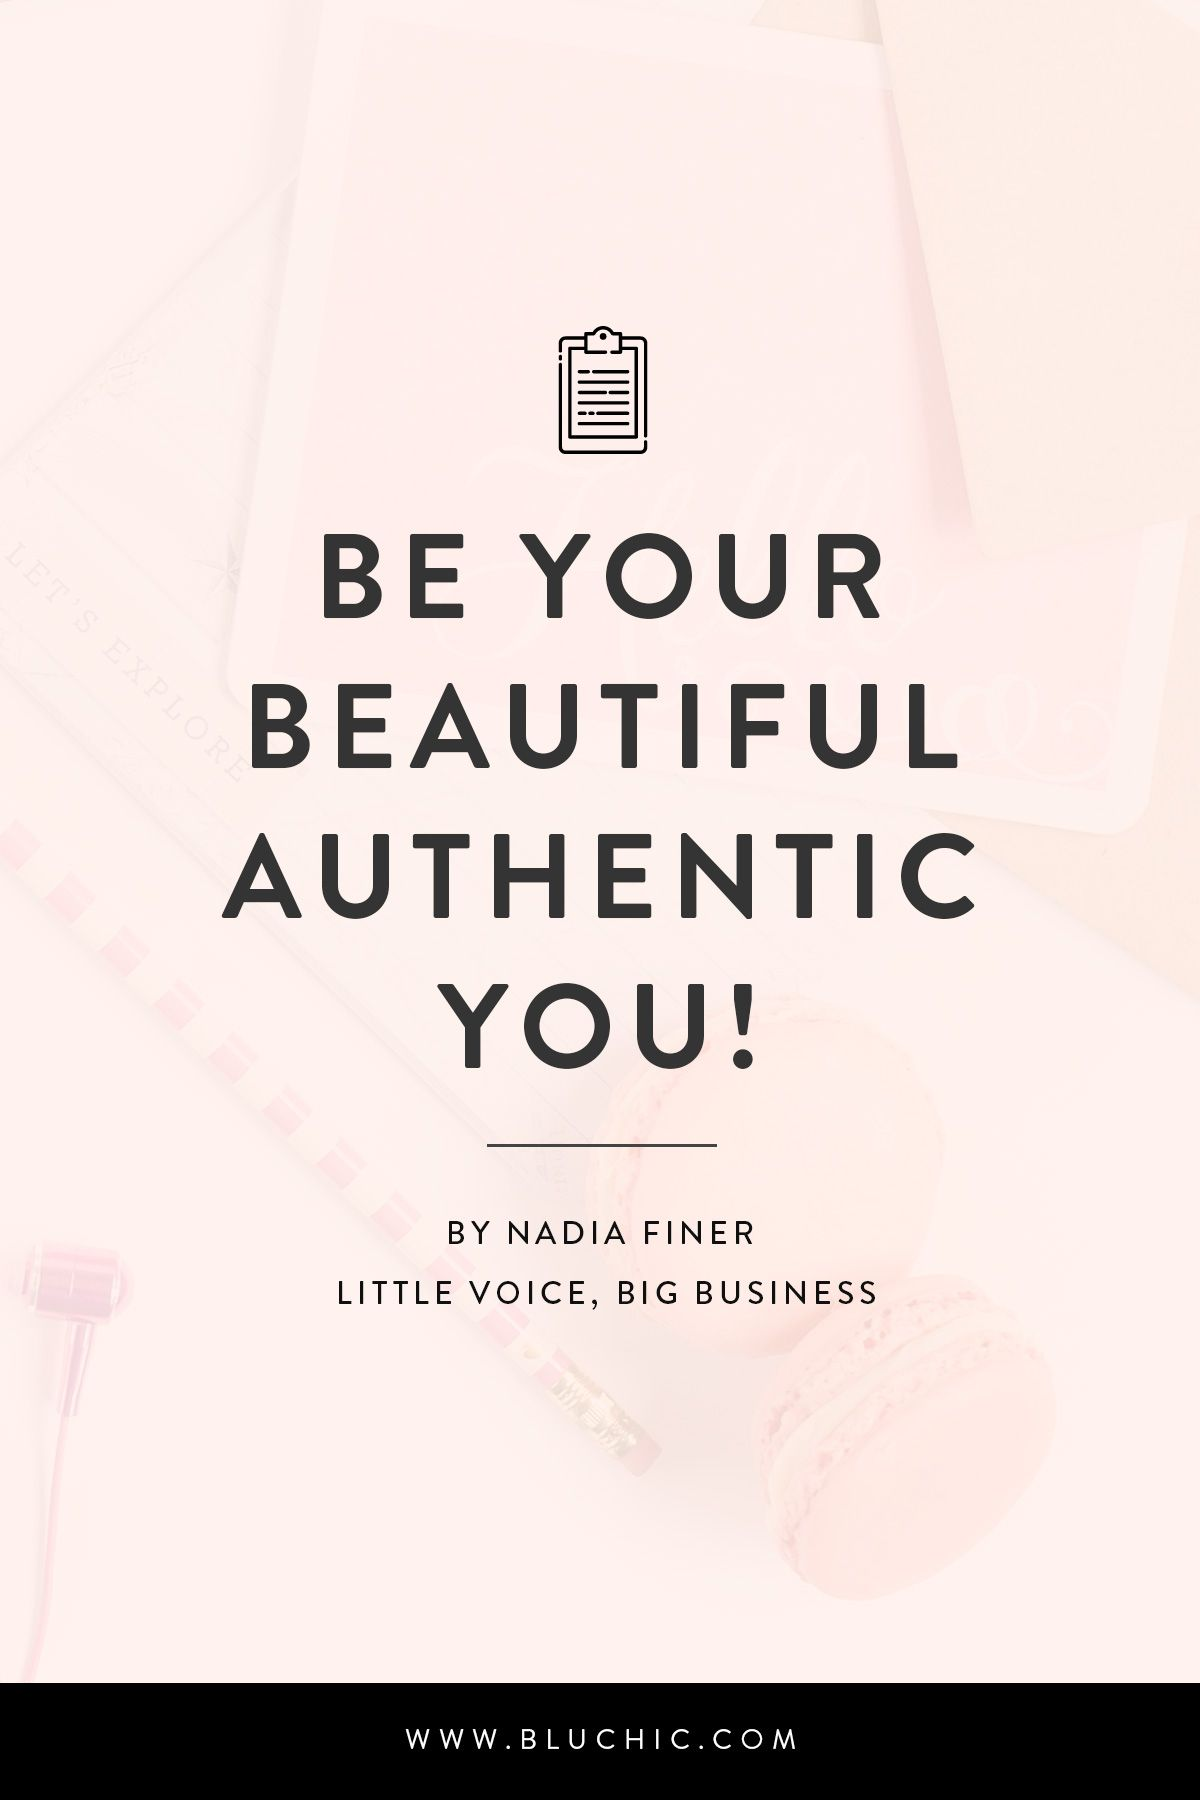 Be your beautiful authentic you by Nadia Finer